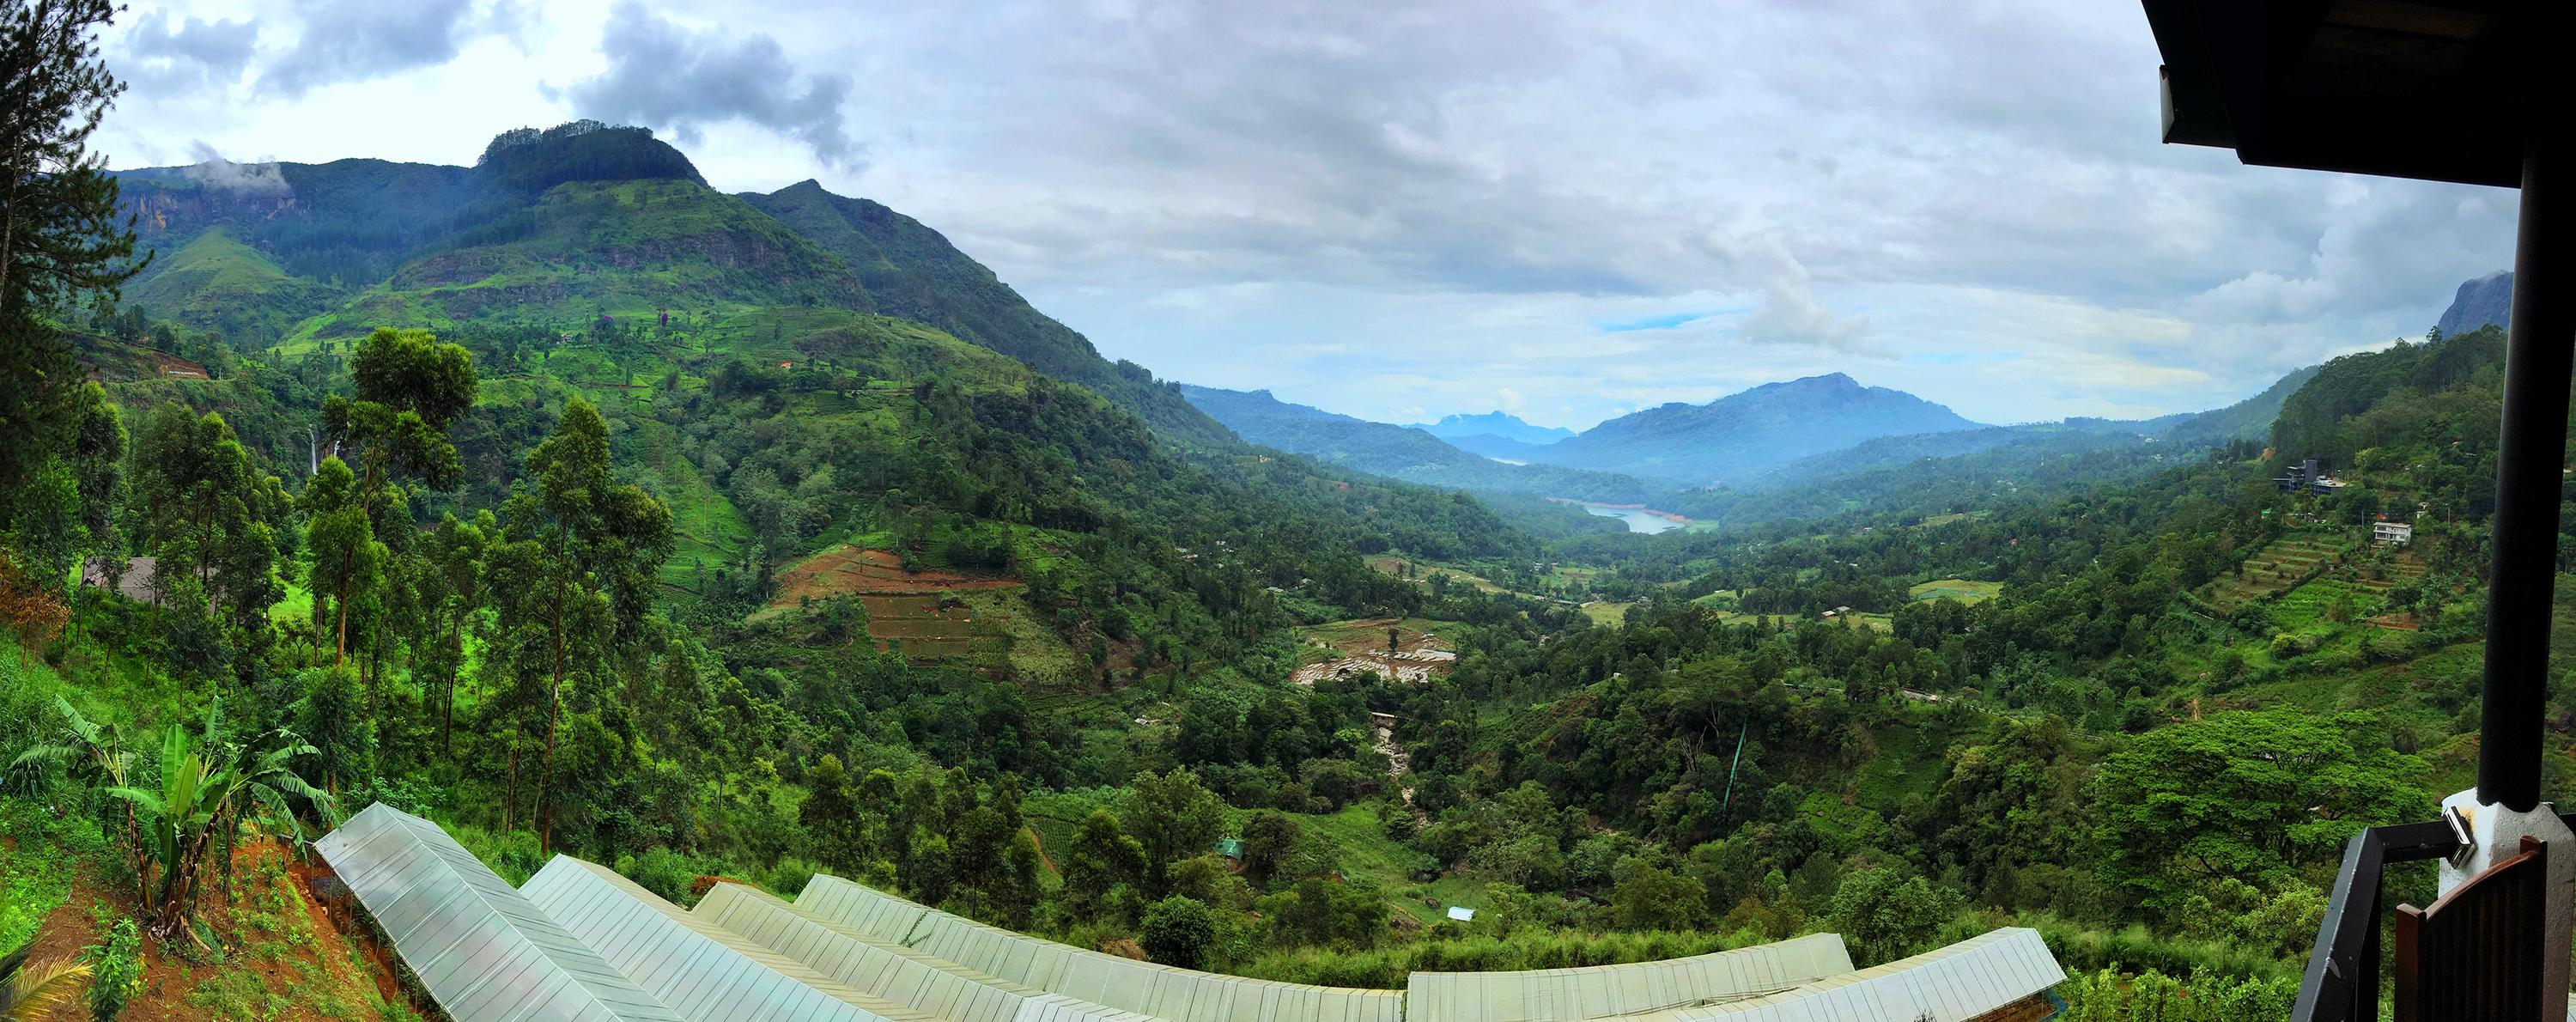 On The Way To Nuwara Eliya -  Panorama From A Cafe & Lodge On The Road, In The Middle Of Nowhere.